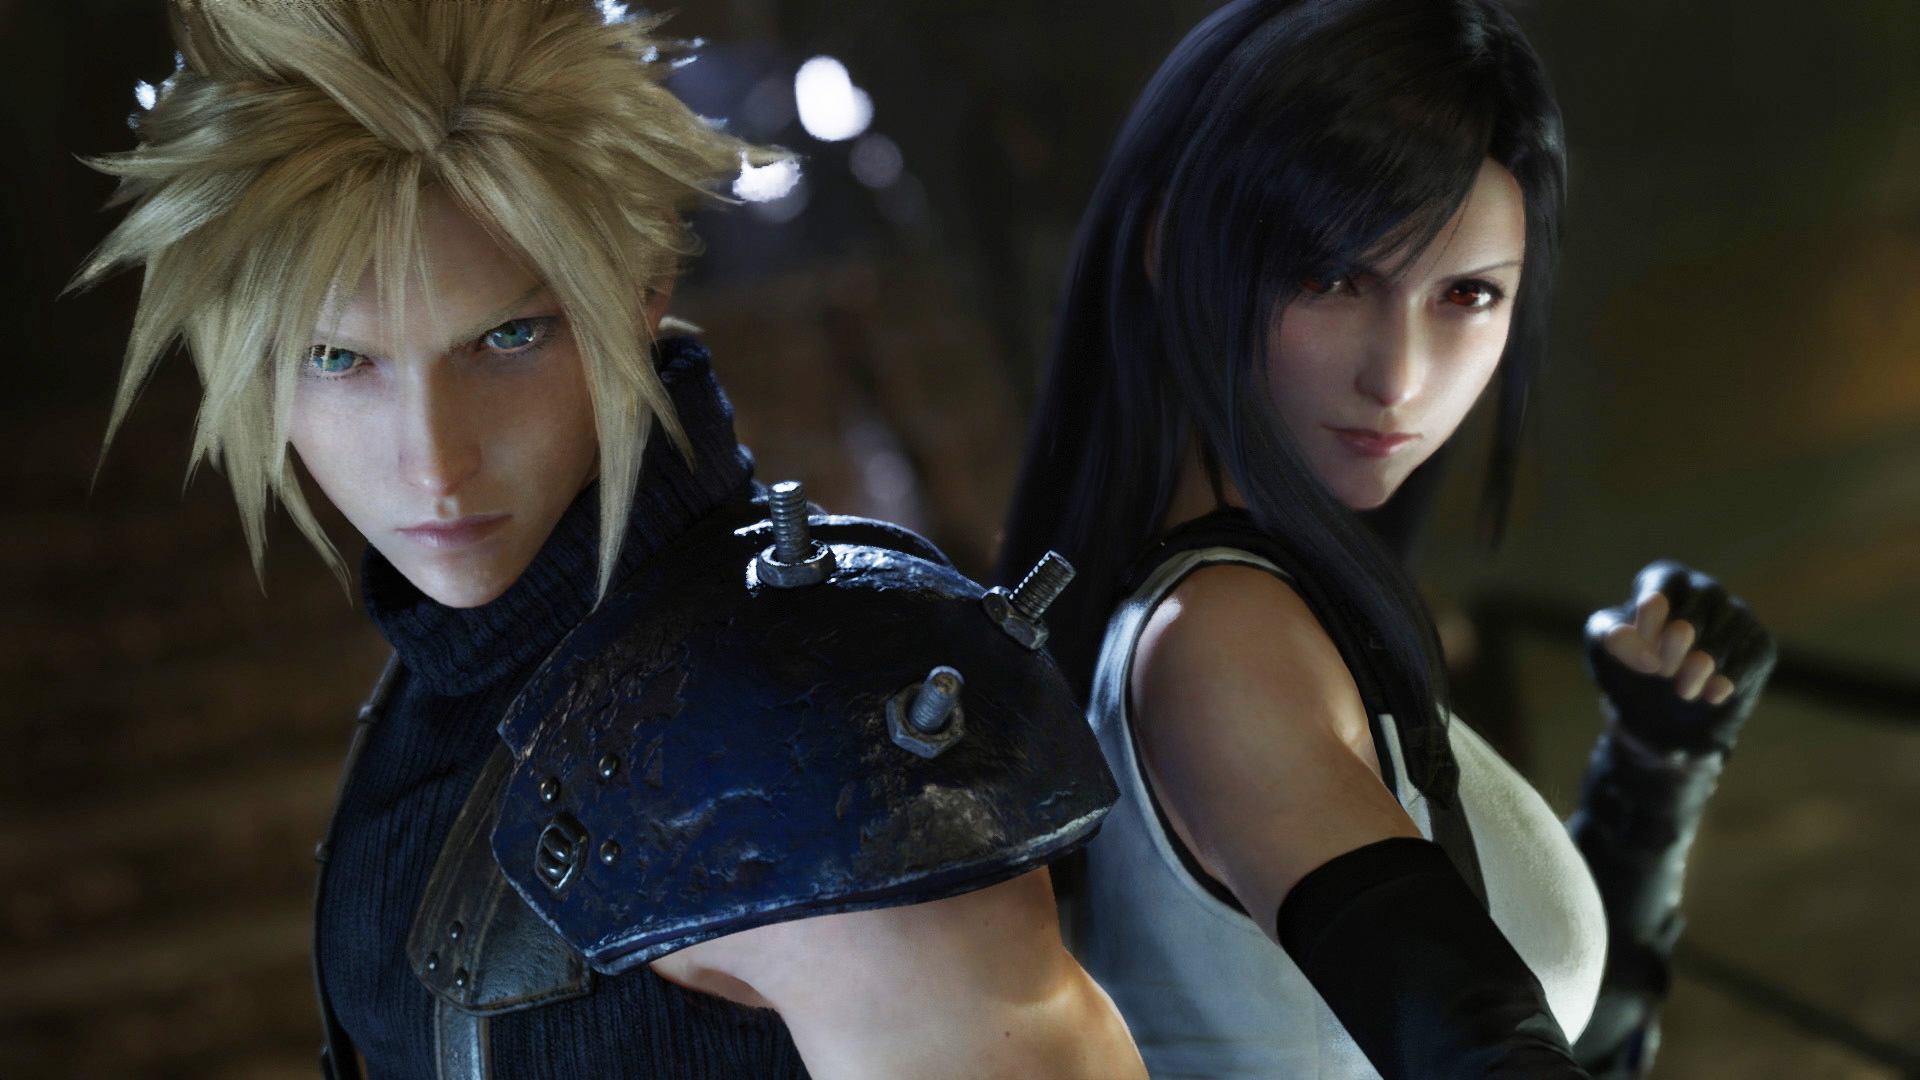 Final Fantasy 7 Remake S Timed Exclusivity Now Ends In April 2021